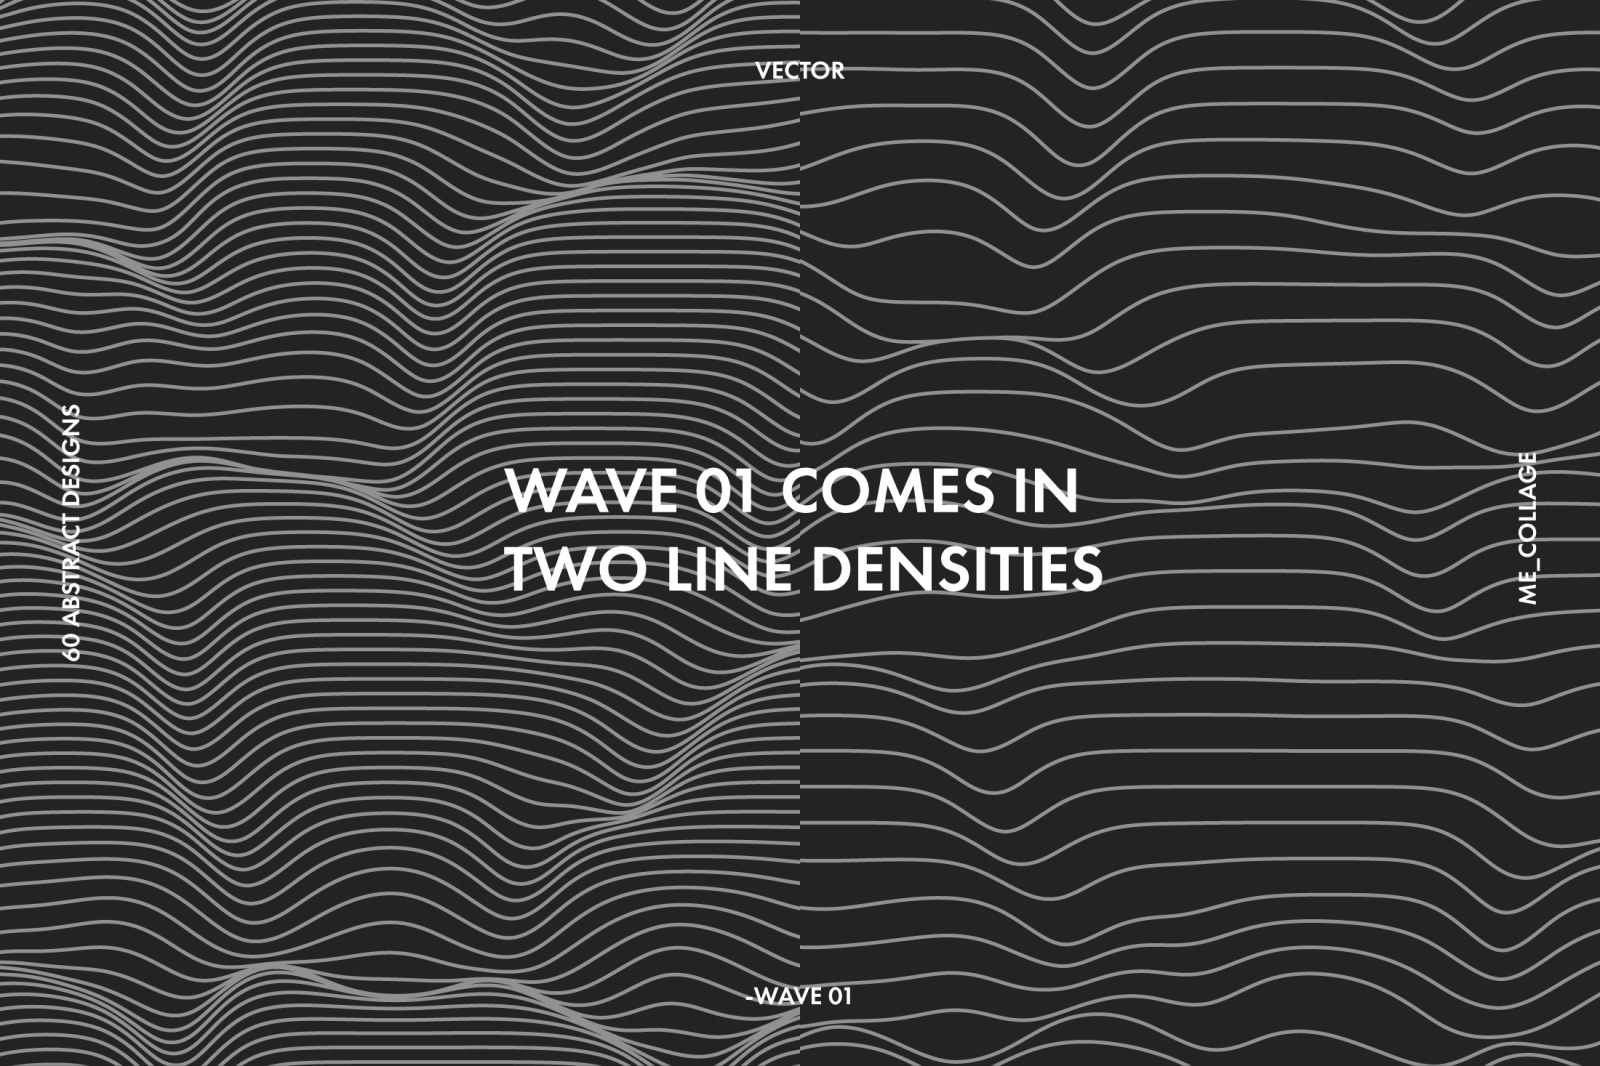 WAVE 01 - 60 ABSTRACT VECTOR DESIGNS